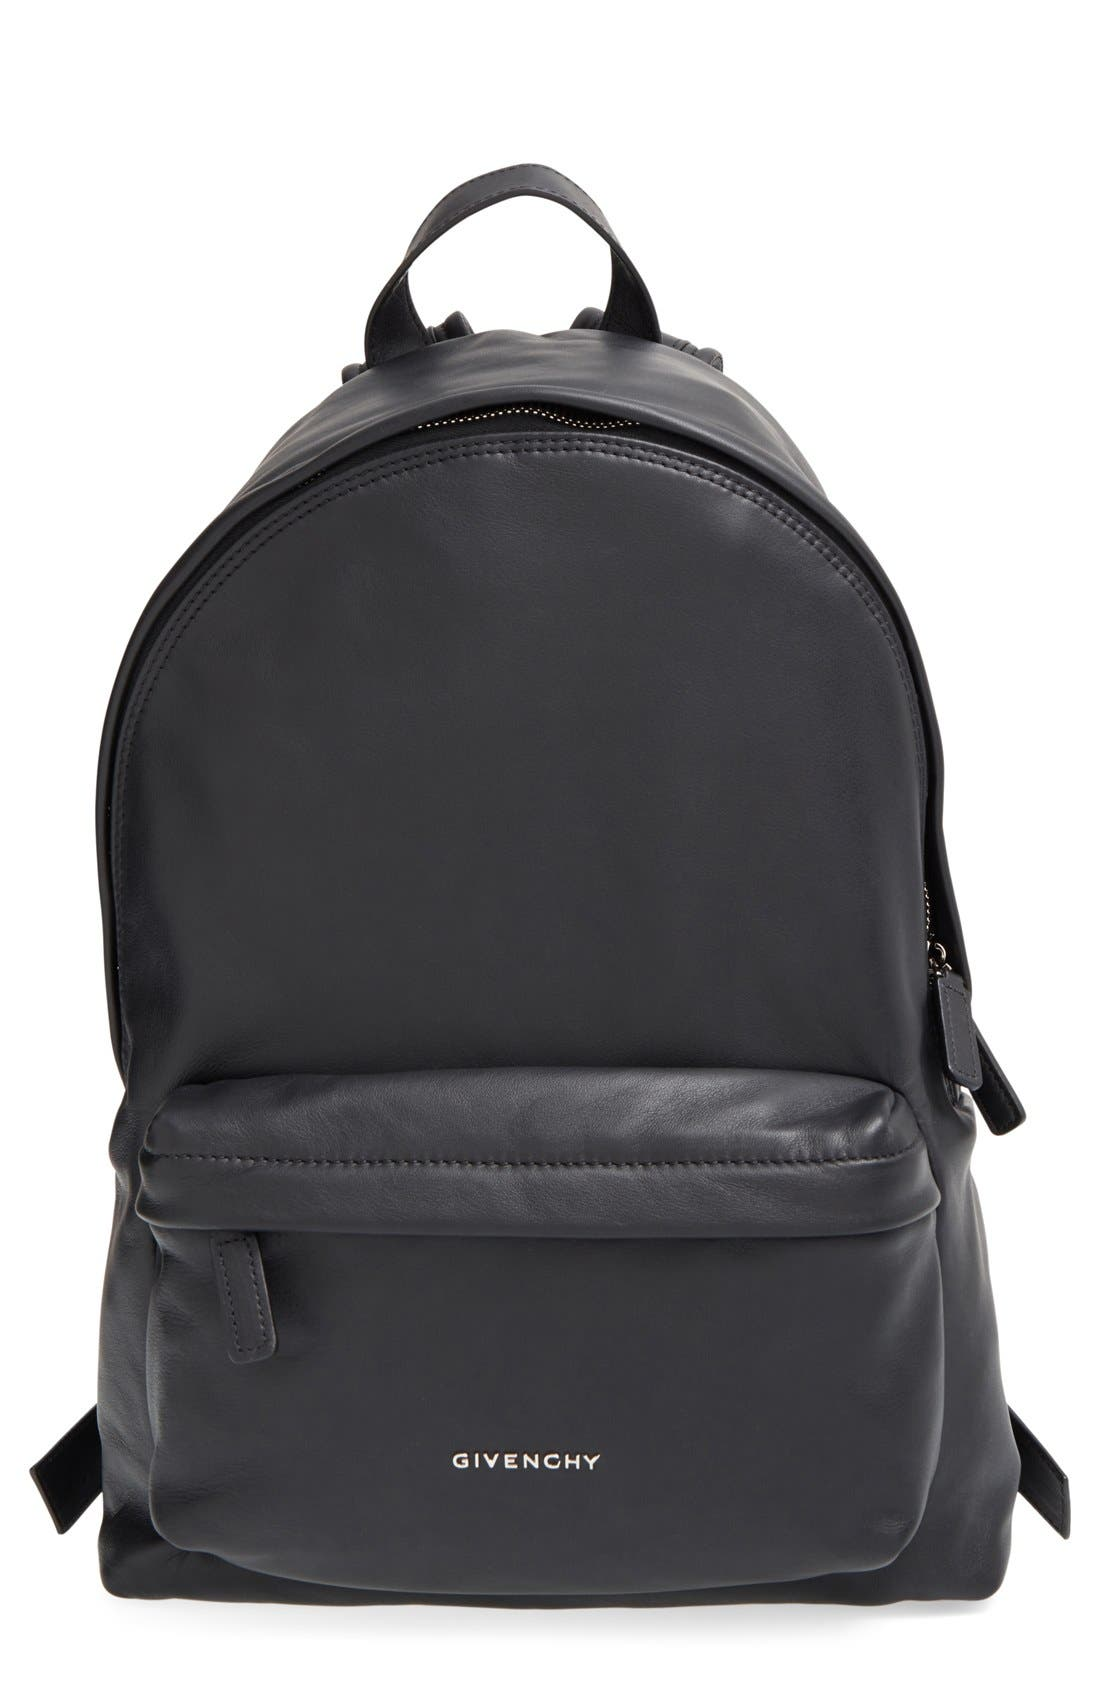 Main Image - Givenchy Calfskin Leather Backpack